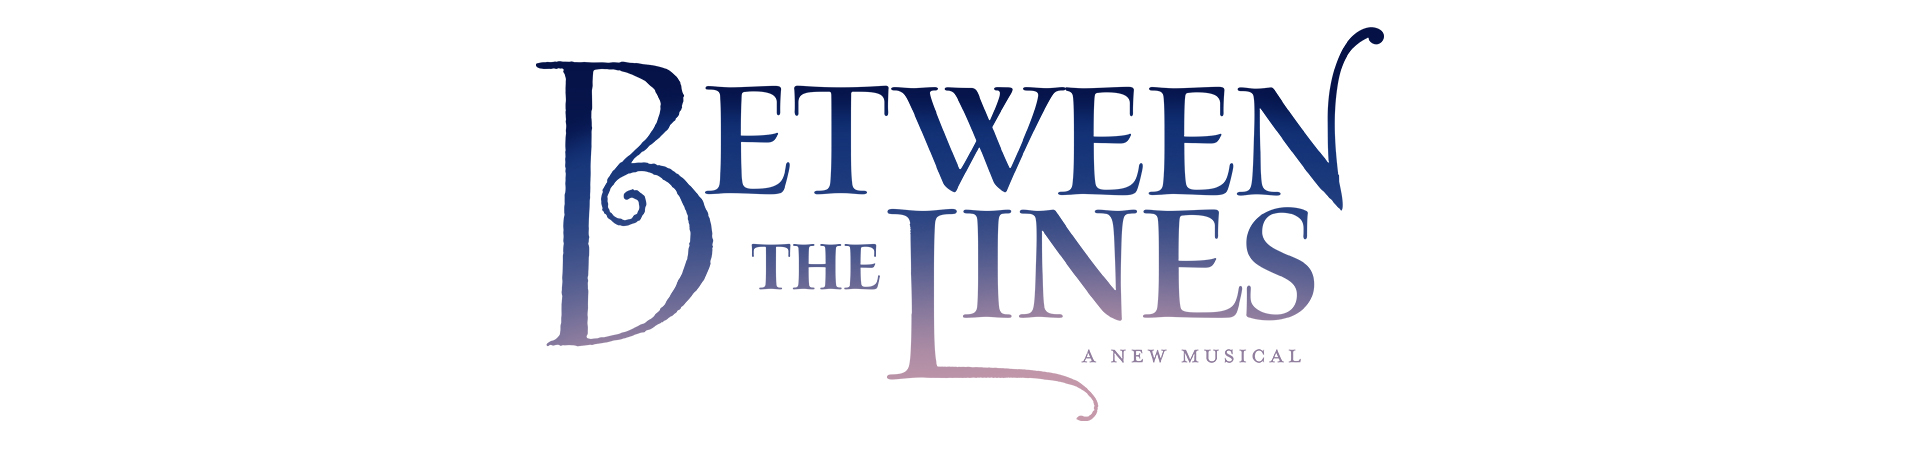 Between the Lines image